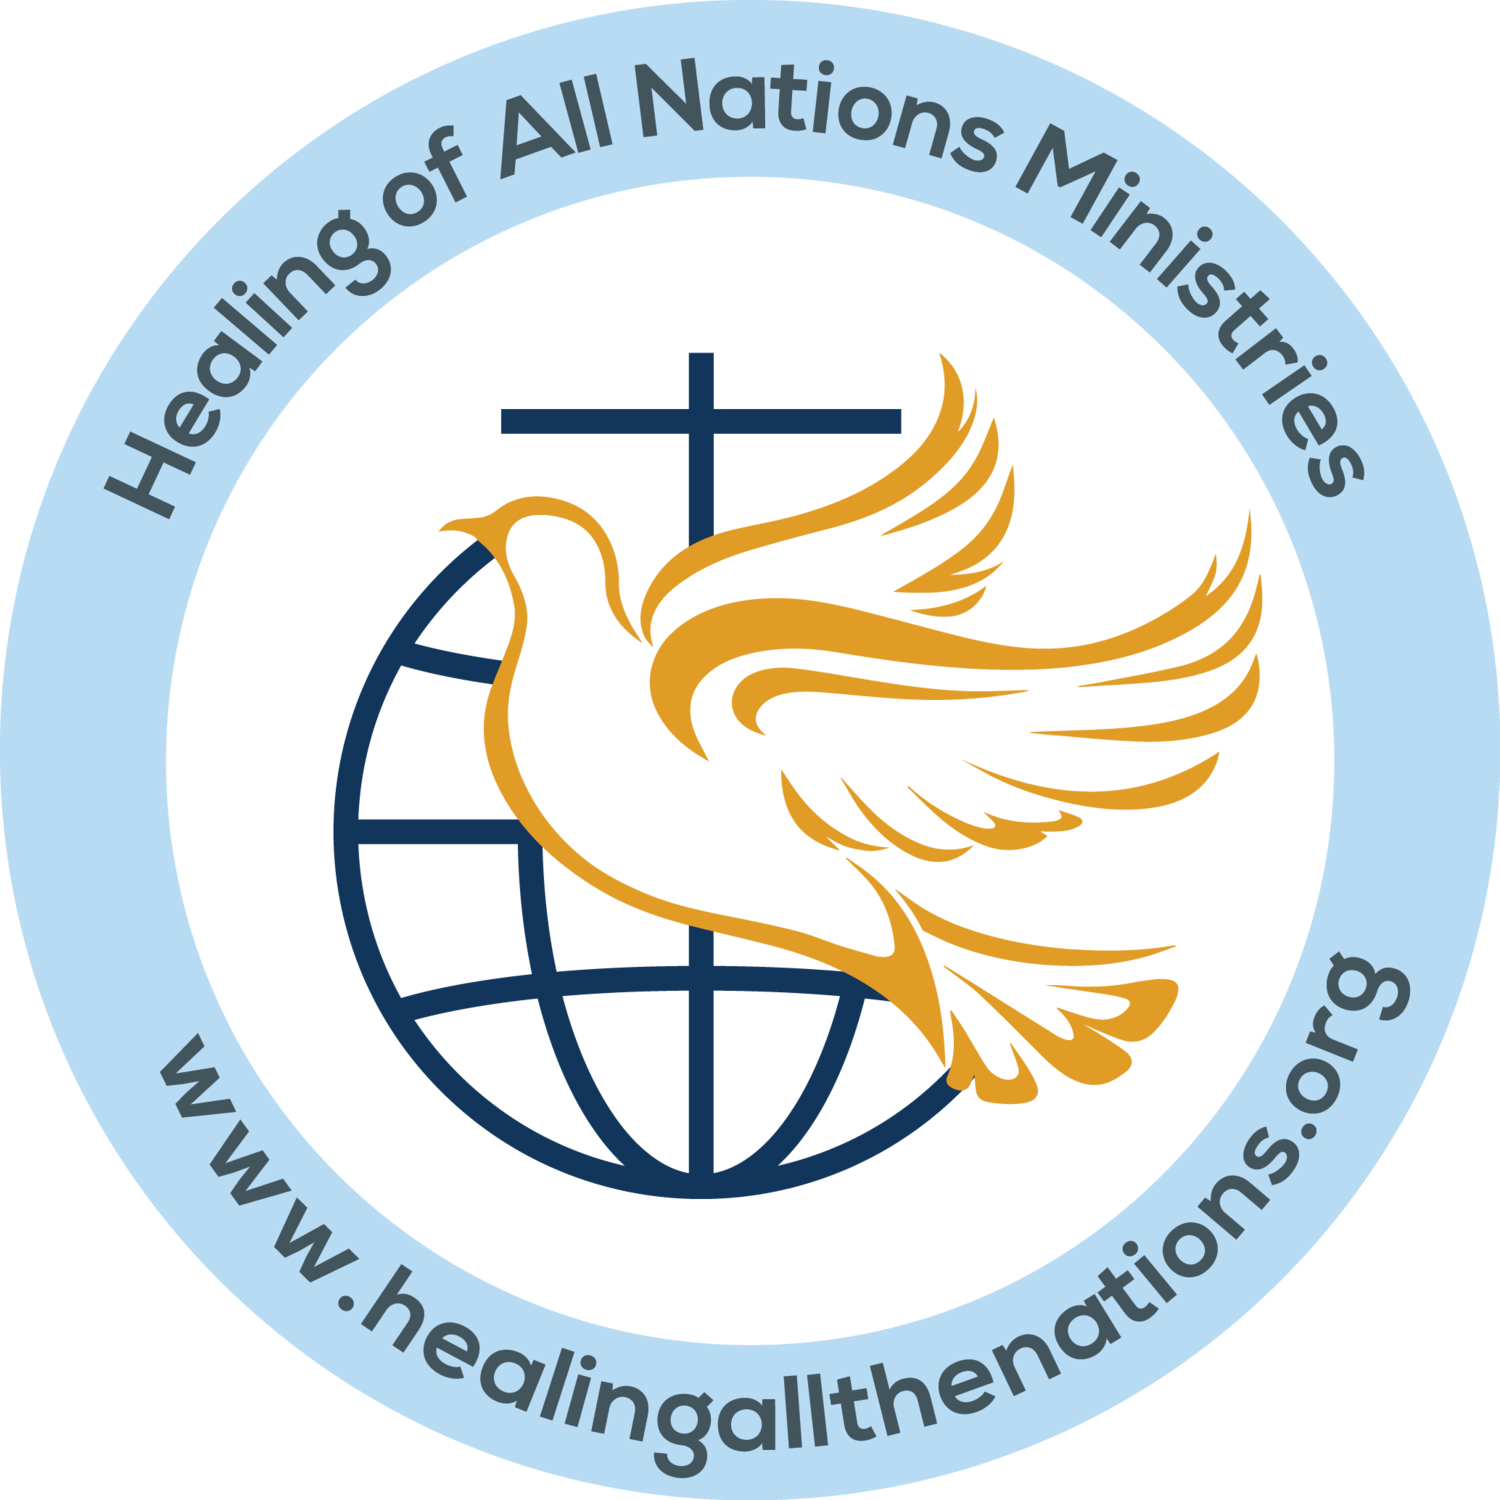 Of all nations ministries healing of all nations ministries buycottarizona Image collections